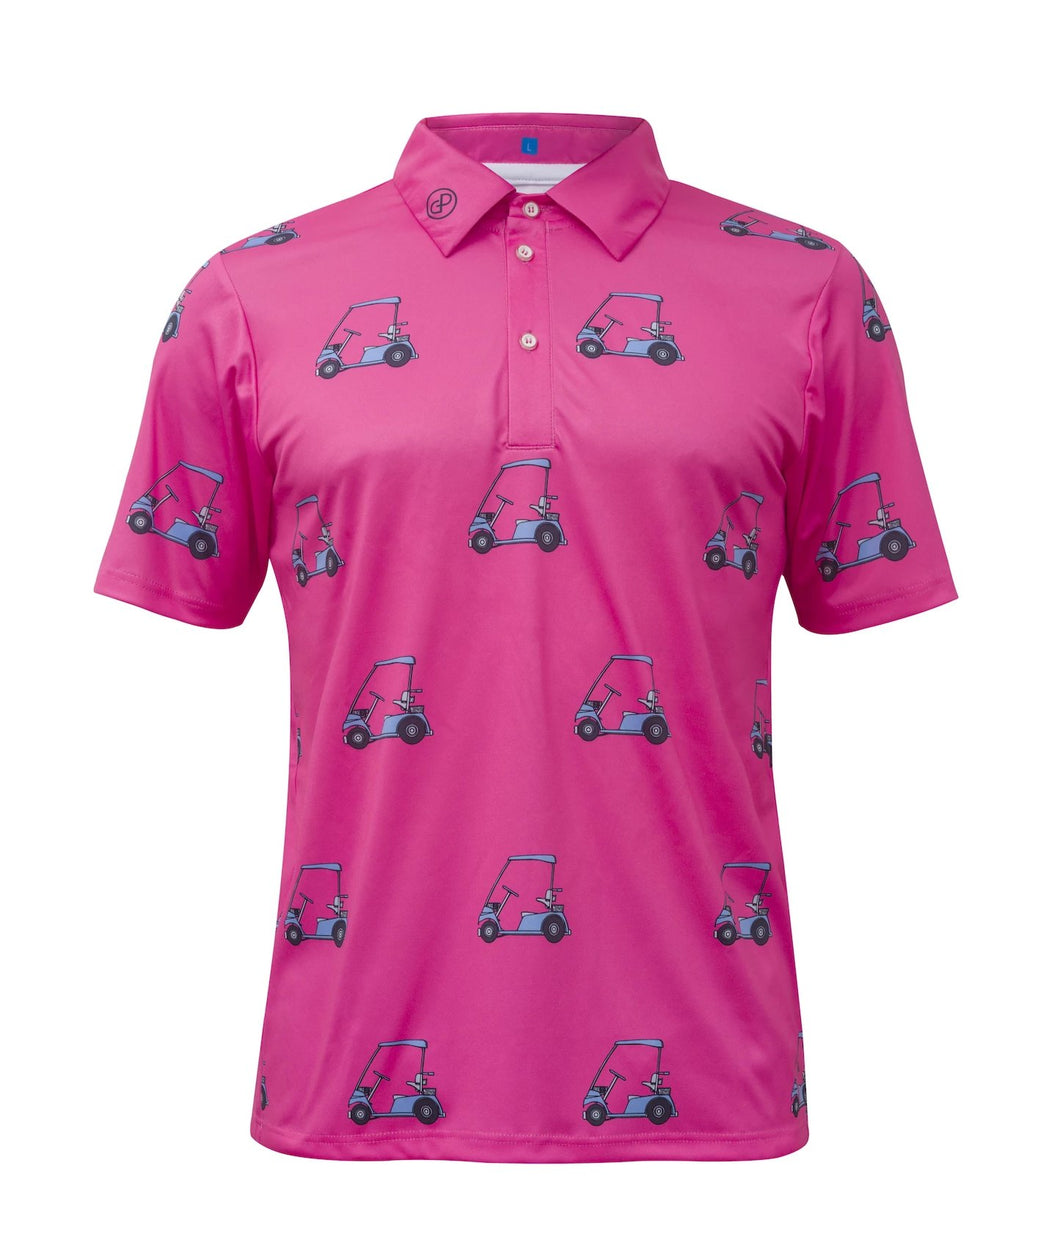 Pink Golf Cart Performance Polo Shirt